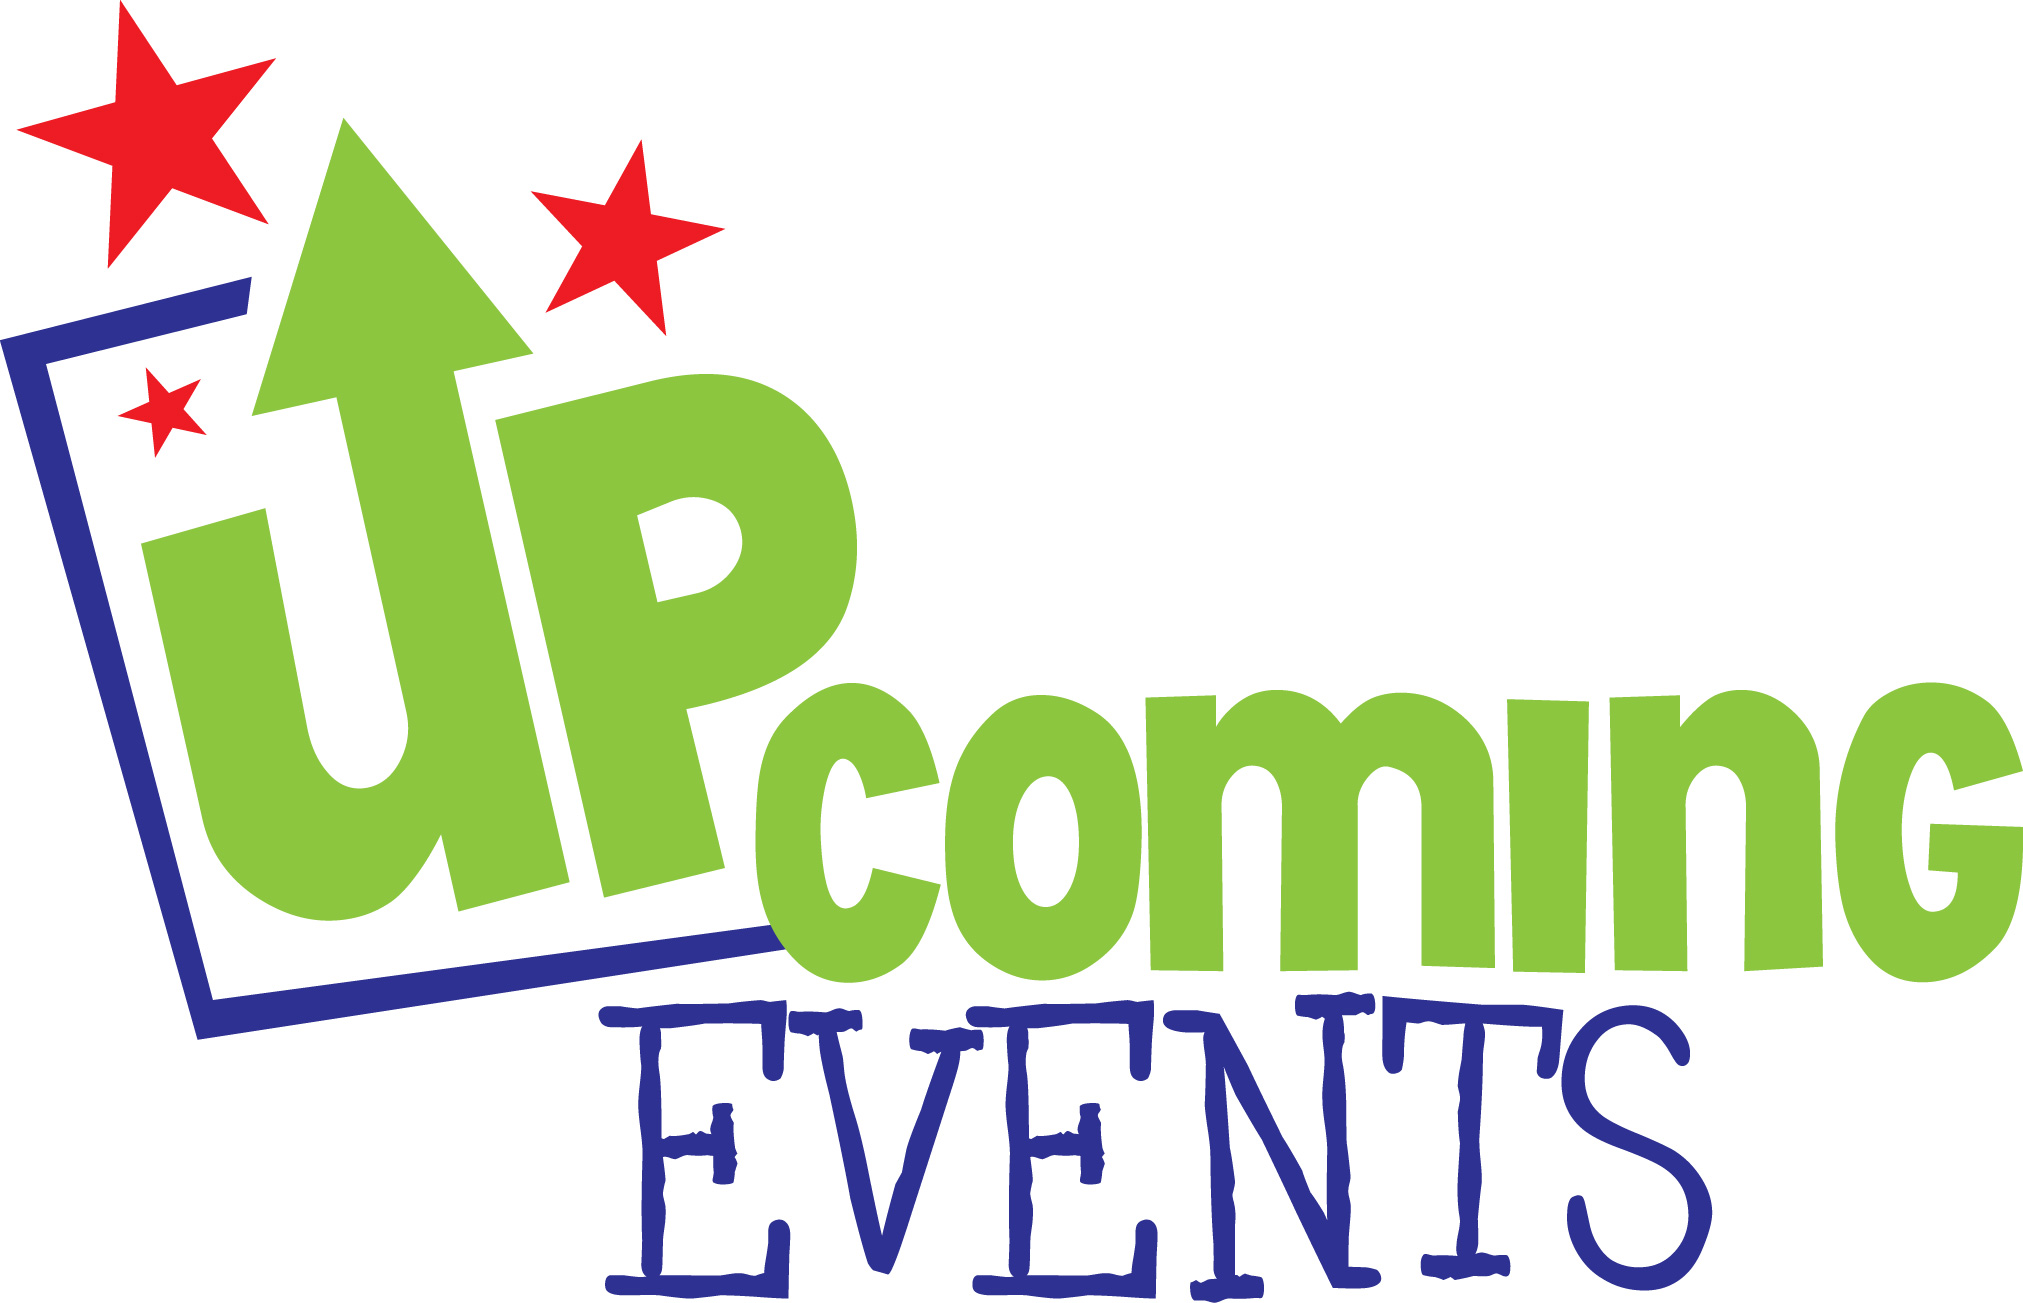 Schedule clipart event. Free events cliparts download